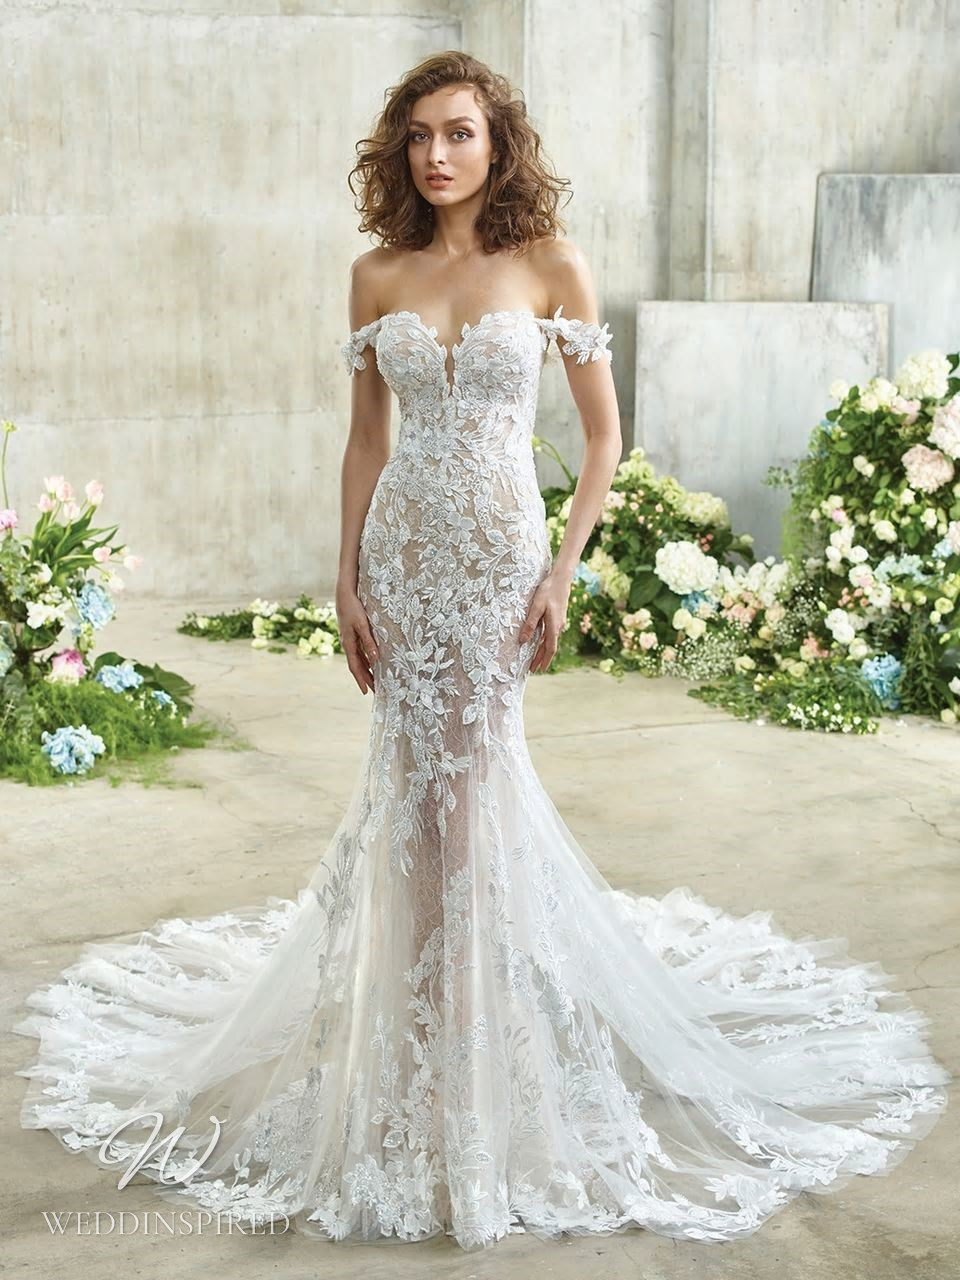 A Badgley Mischka off the shoulder lace mermaid wedding dress with a sweetheart neckline and a train